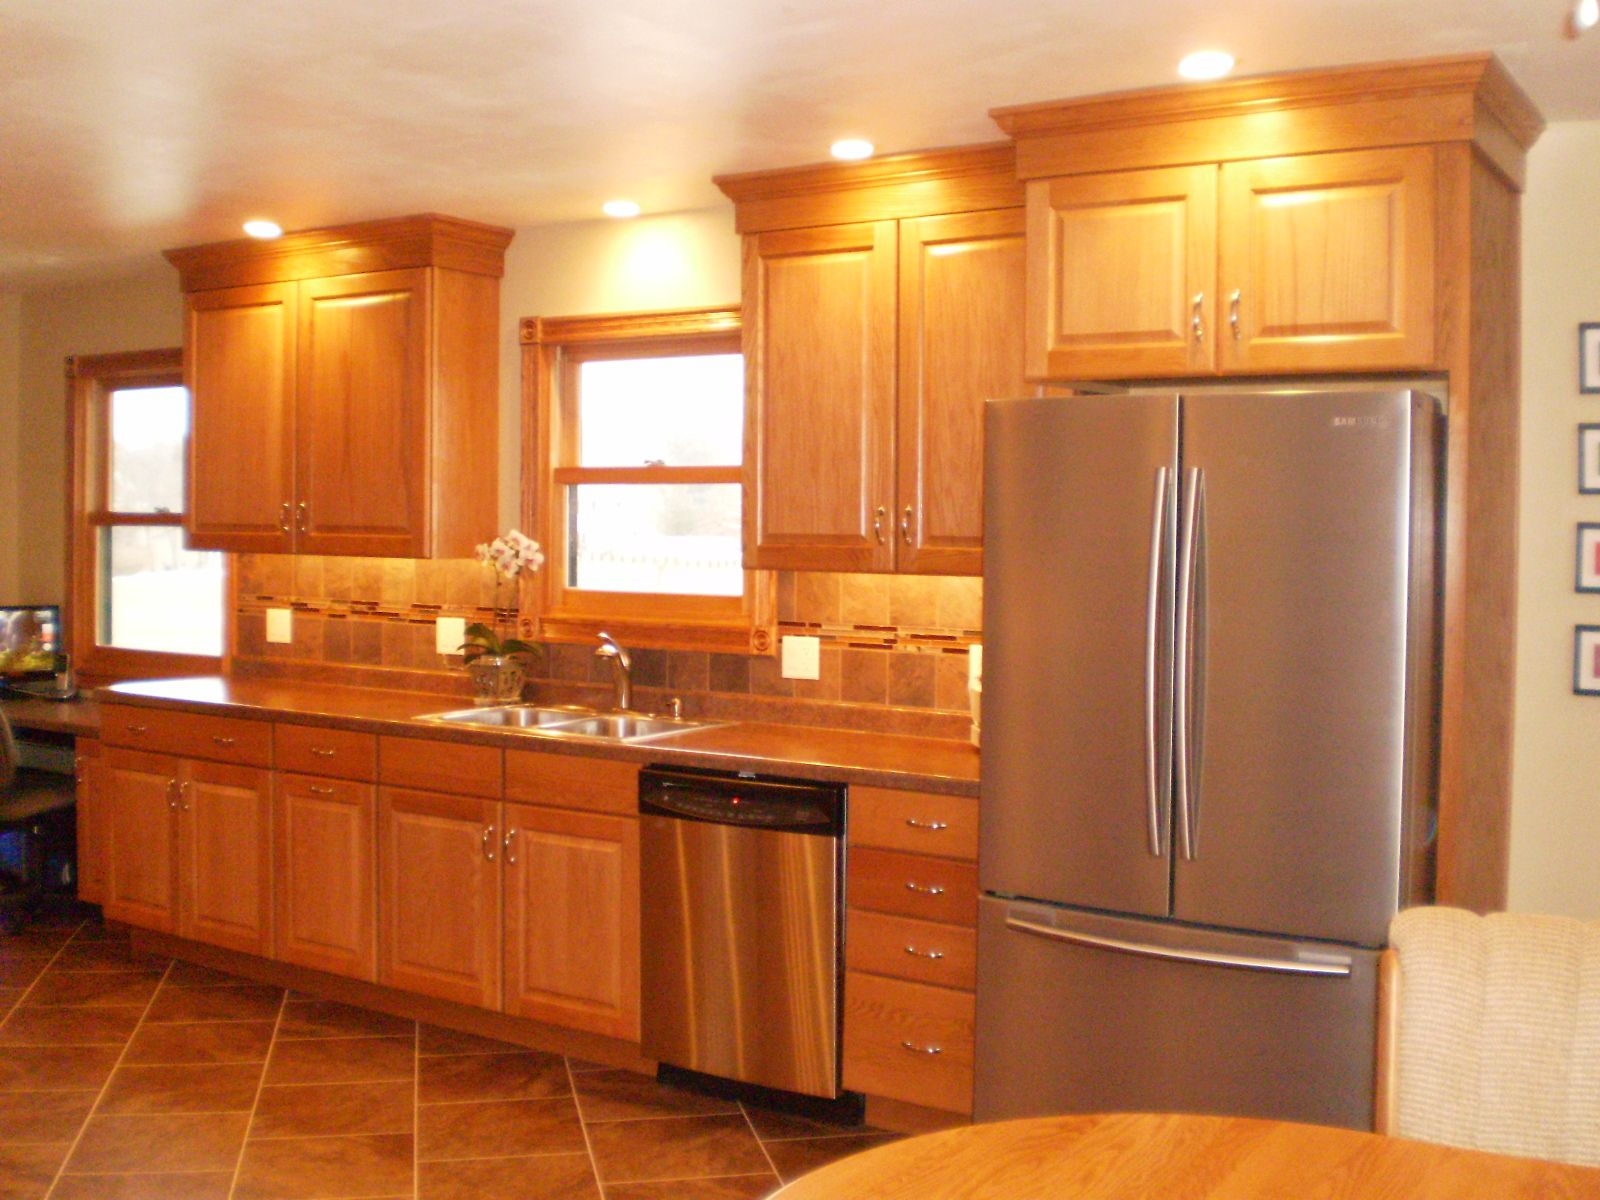 Oak Floor Cabinets Oak Cabinets Luxury Vinyl Floor Tile Tile Backsplash And